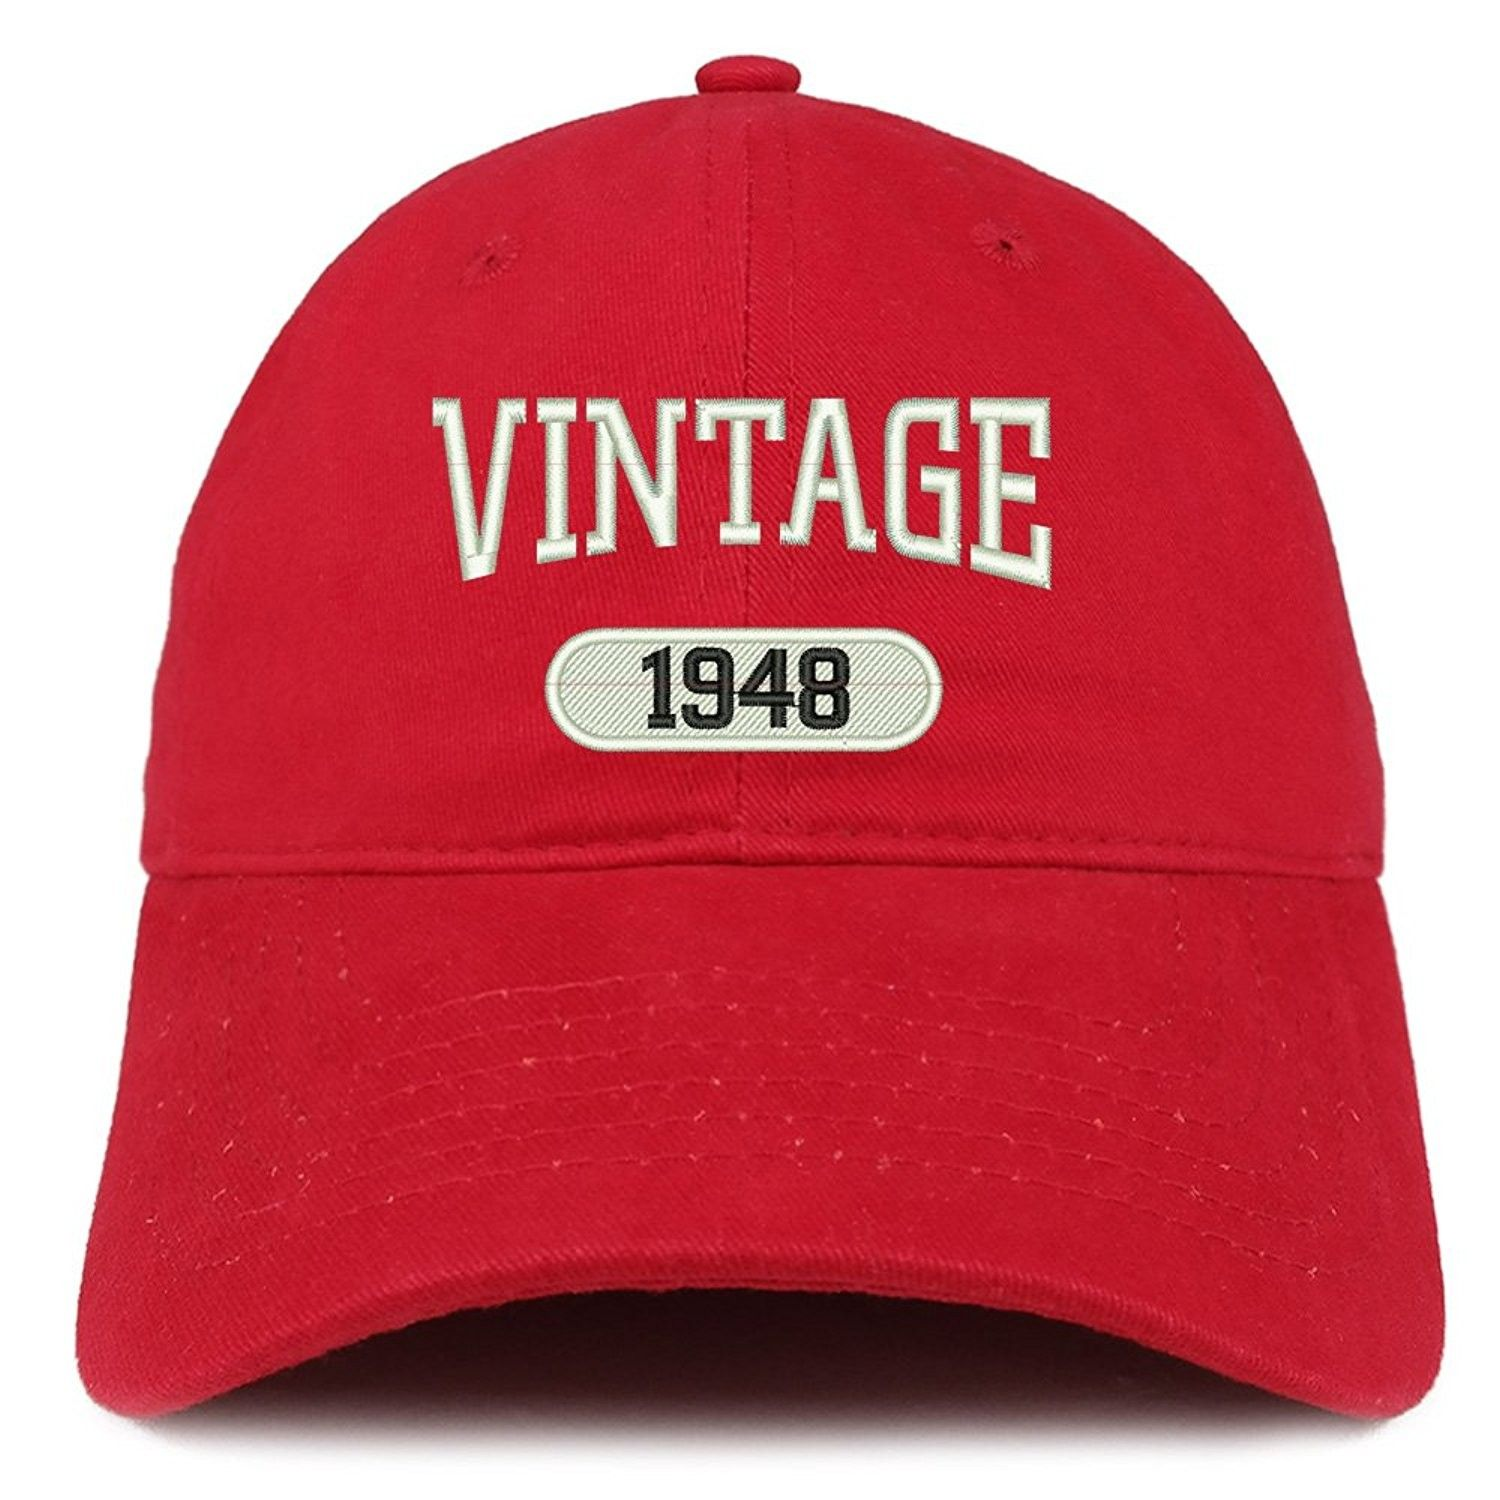 Vintage 1948 Embroidered 70th Birthday Relaxed Fitting Cotton Cap